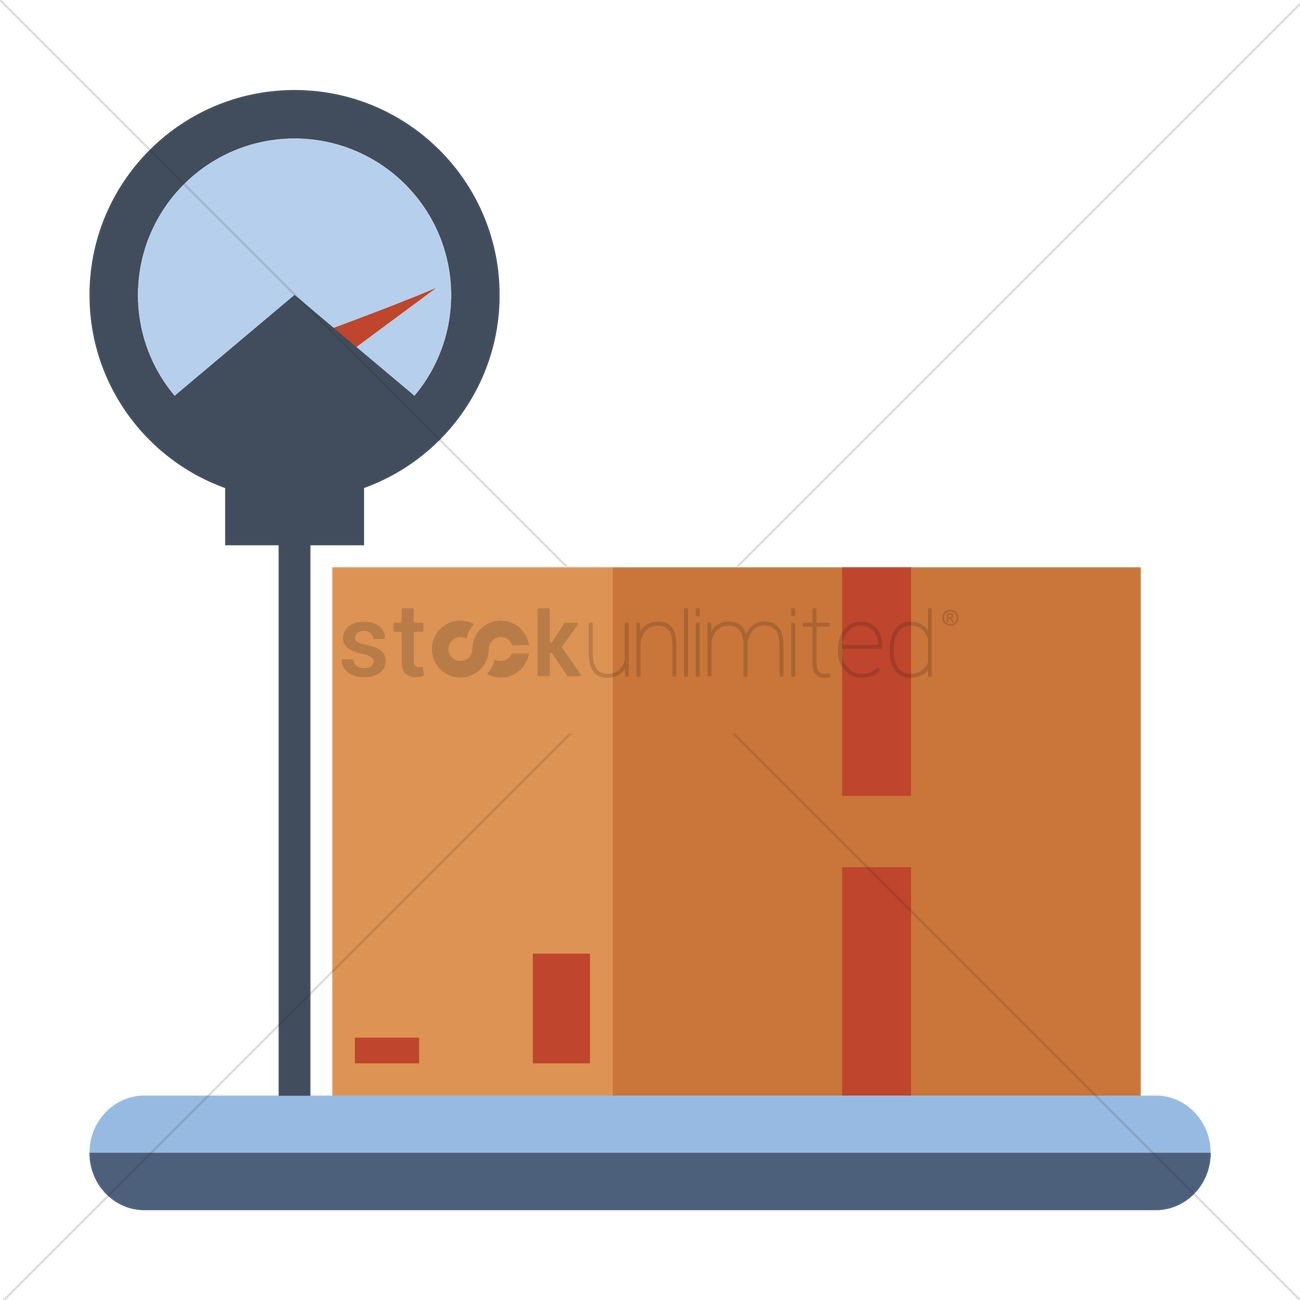 a cardboard box on a weighing scale vector image 1243998